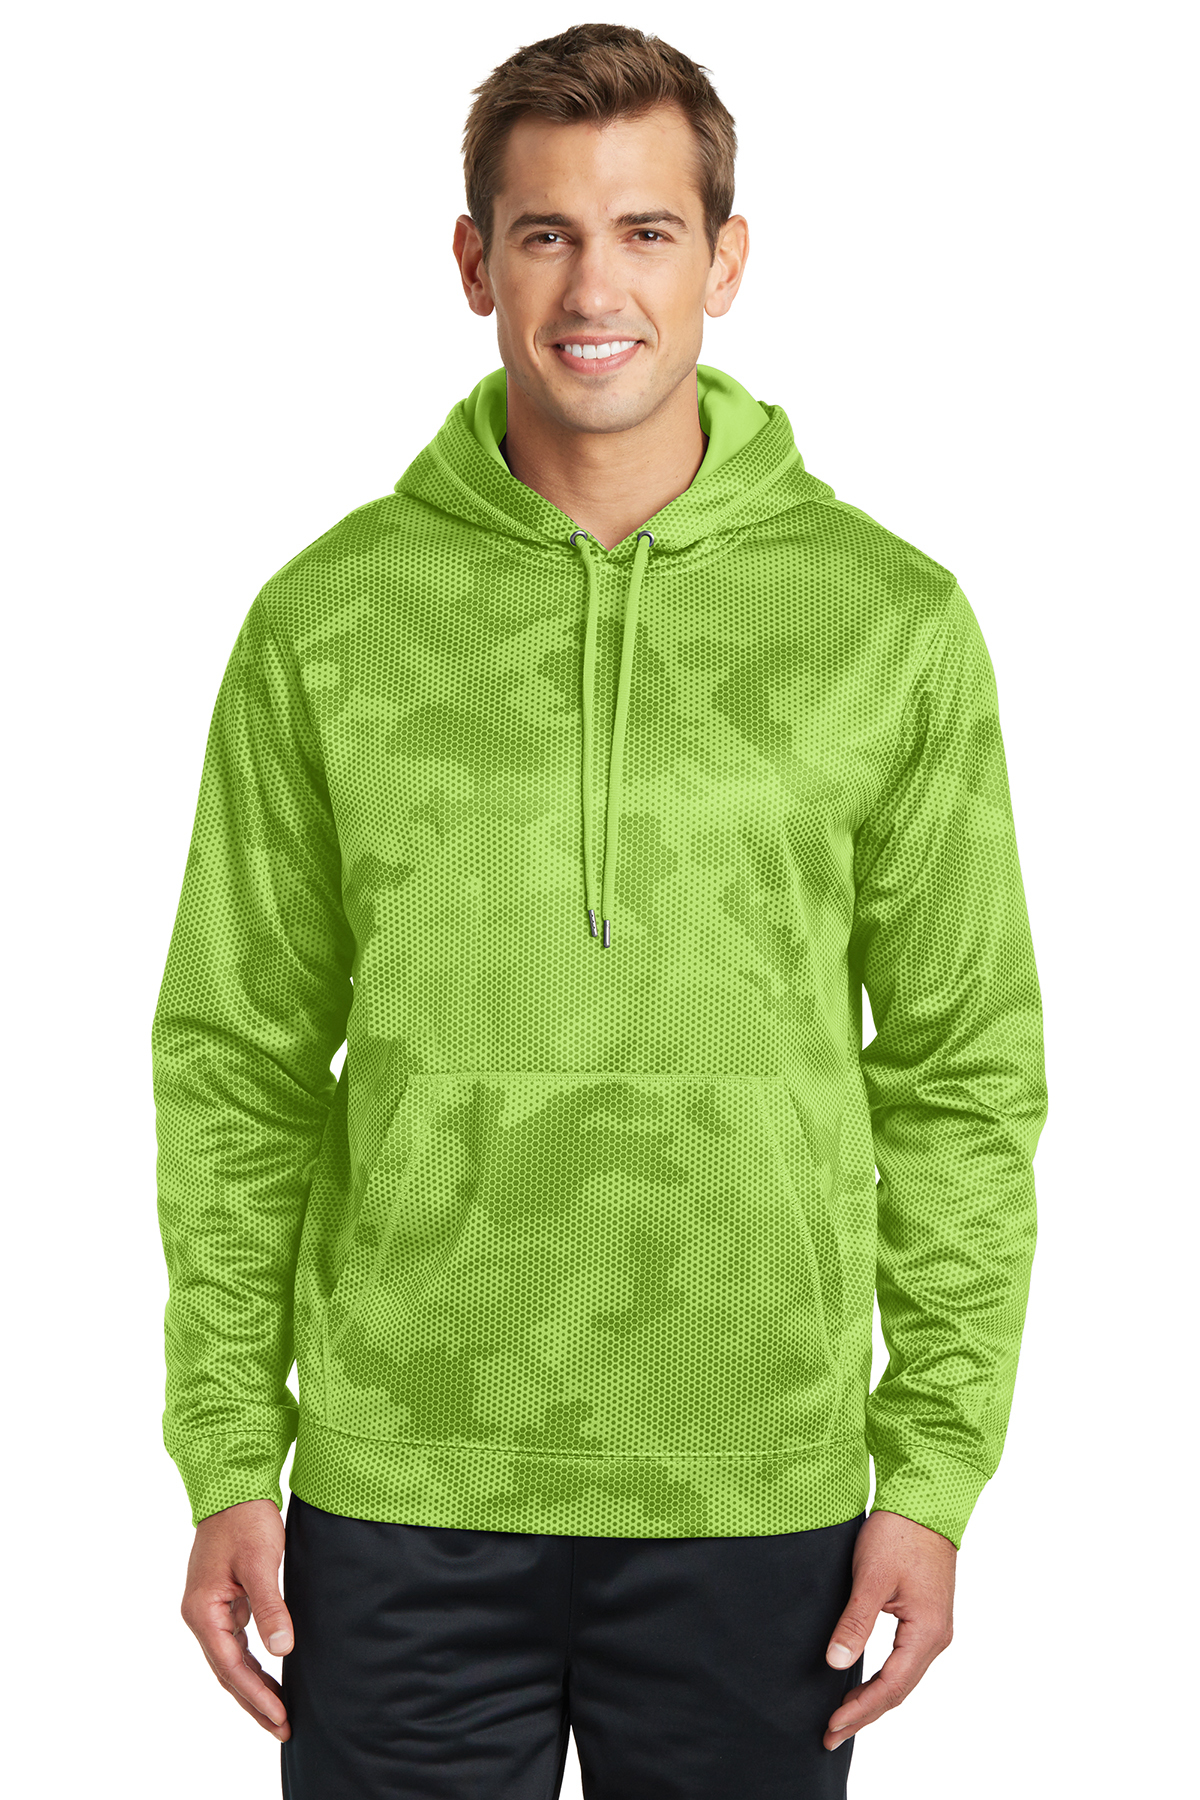 Sport Tek Sport Wick Camohex Fleece Hooded Pullover Performance Sweatshirts Fleece Sport Tek Ready for you to customize for your event or team. sport tek sport wick camohex fleece